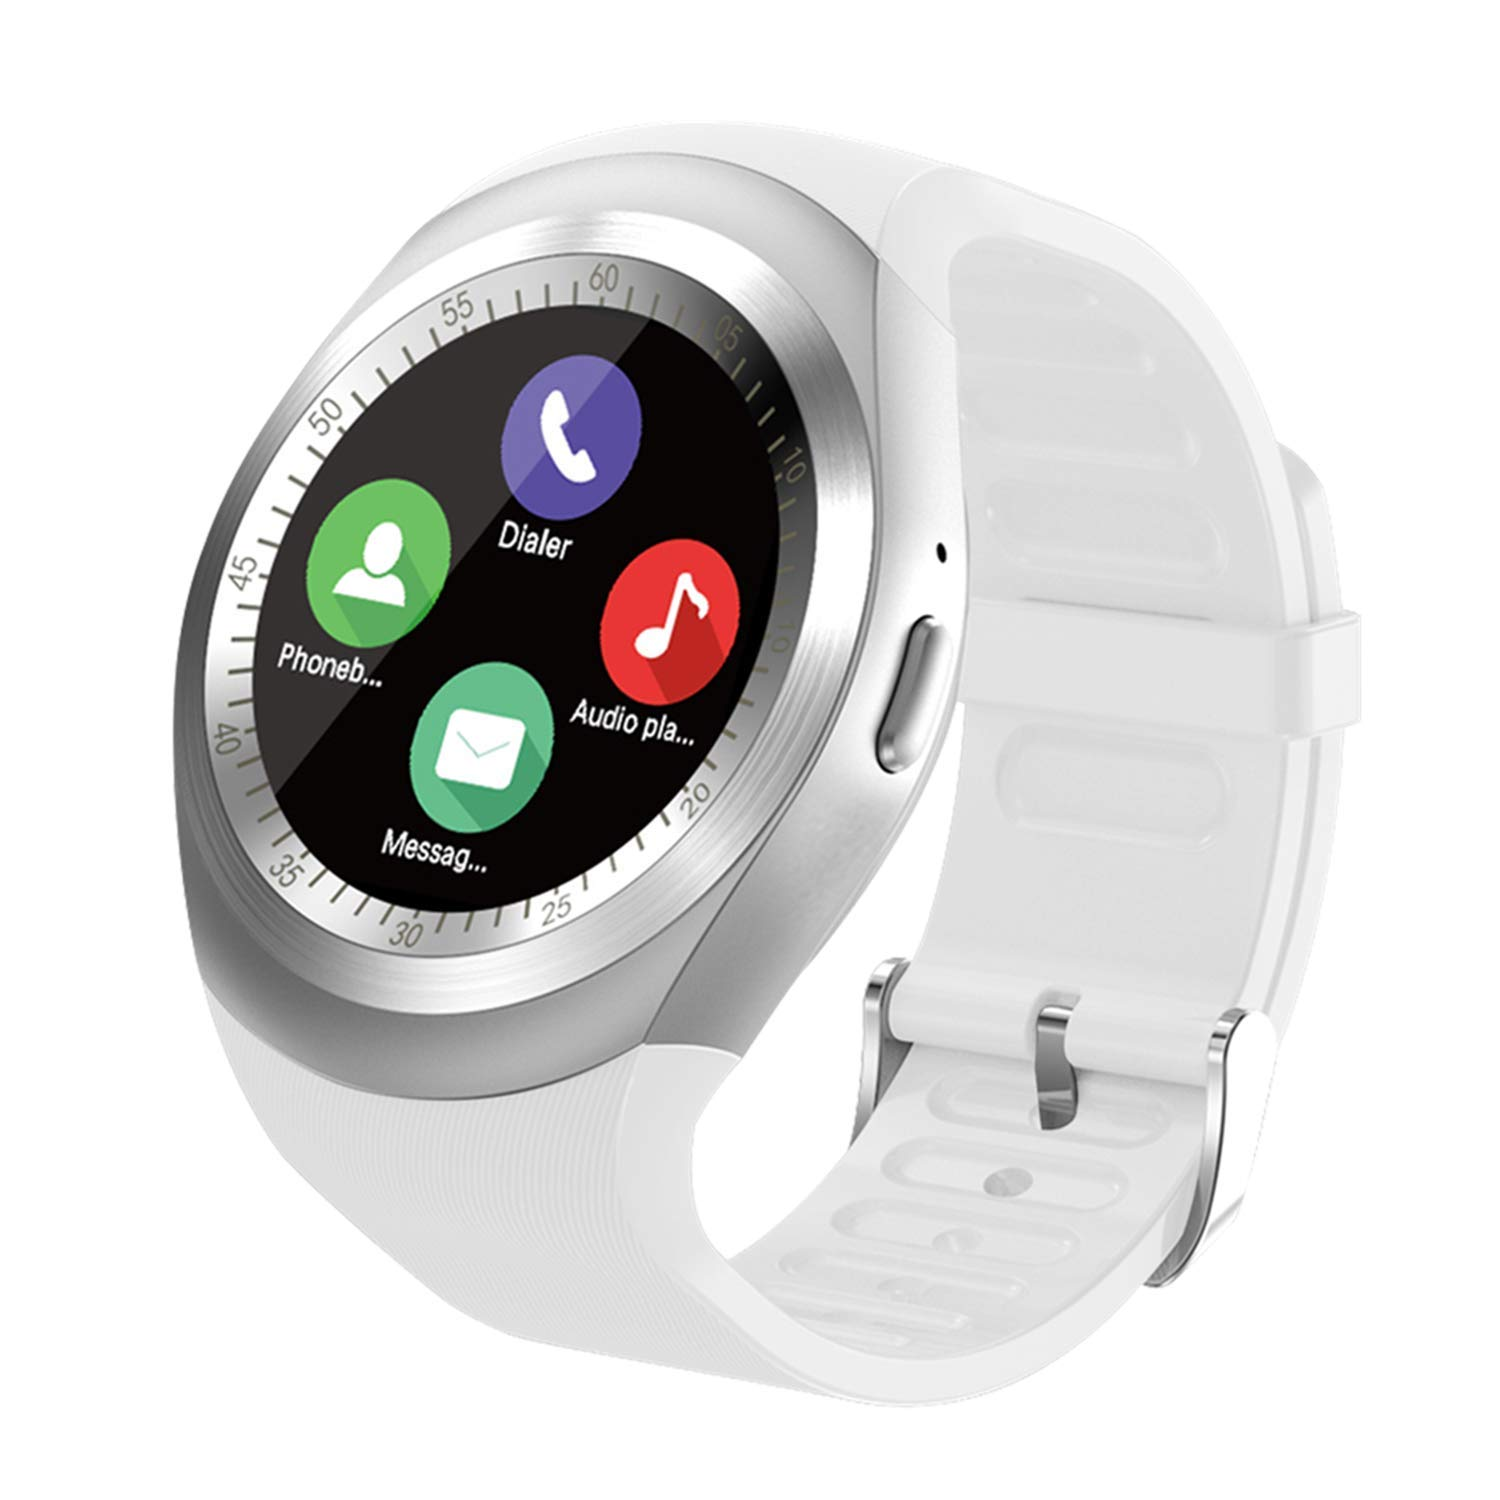 Smart Watch SEPVER SN05 Smartwatch Round Wrist Sport Watch with SIM Card  Slot Touch Screen Camera Compatible with Samsung Huawei Xiaomi Sony LG  Android ... 904e0a1ecc